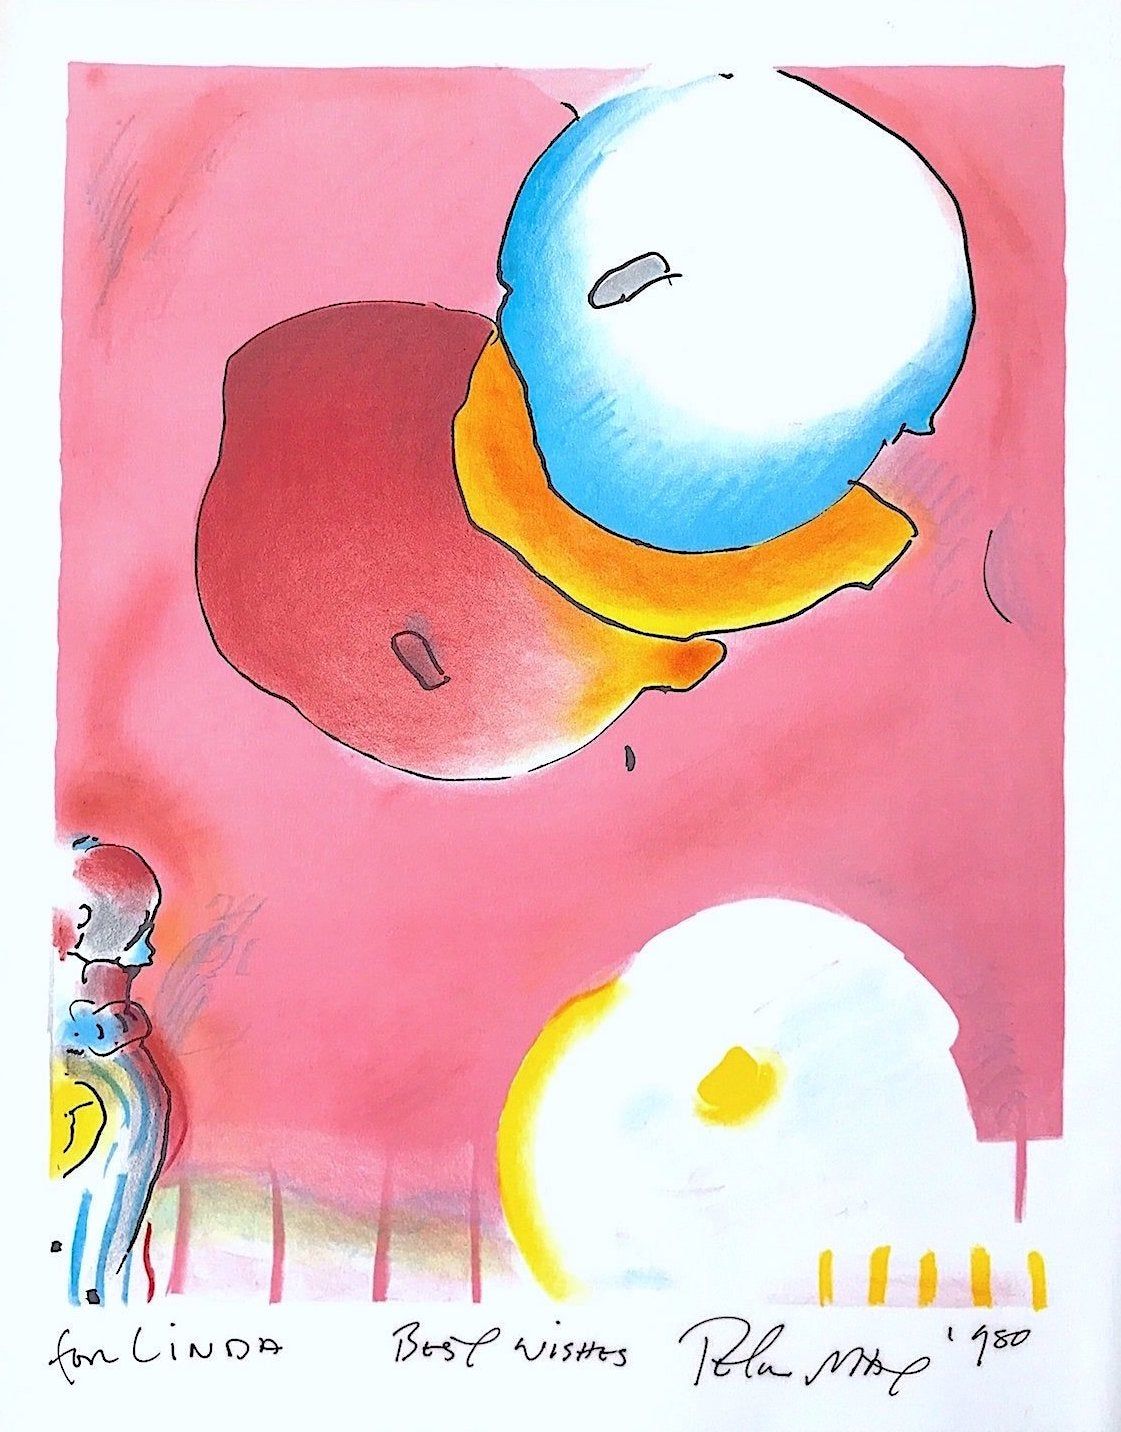 TWO FLOATING Signed Lithograph, Pop Art Abstract, Balloons, Red, Pink, Blue